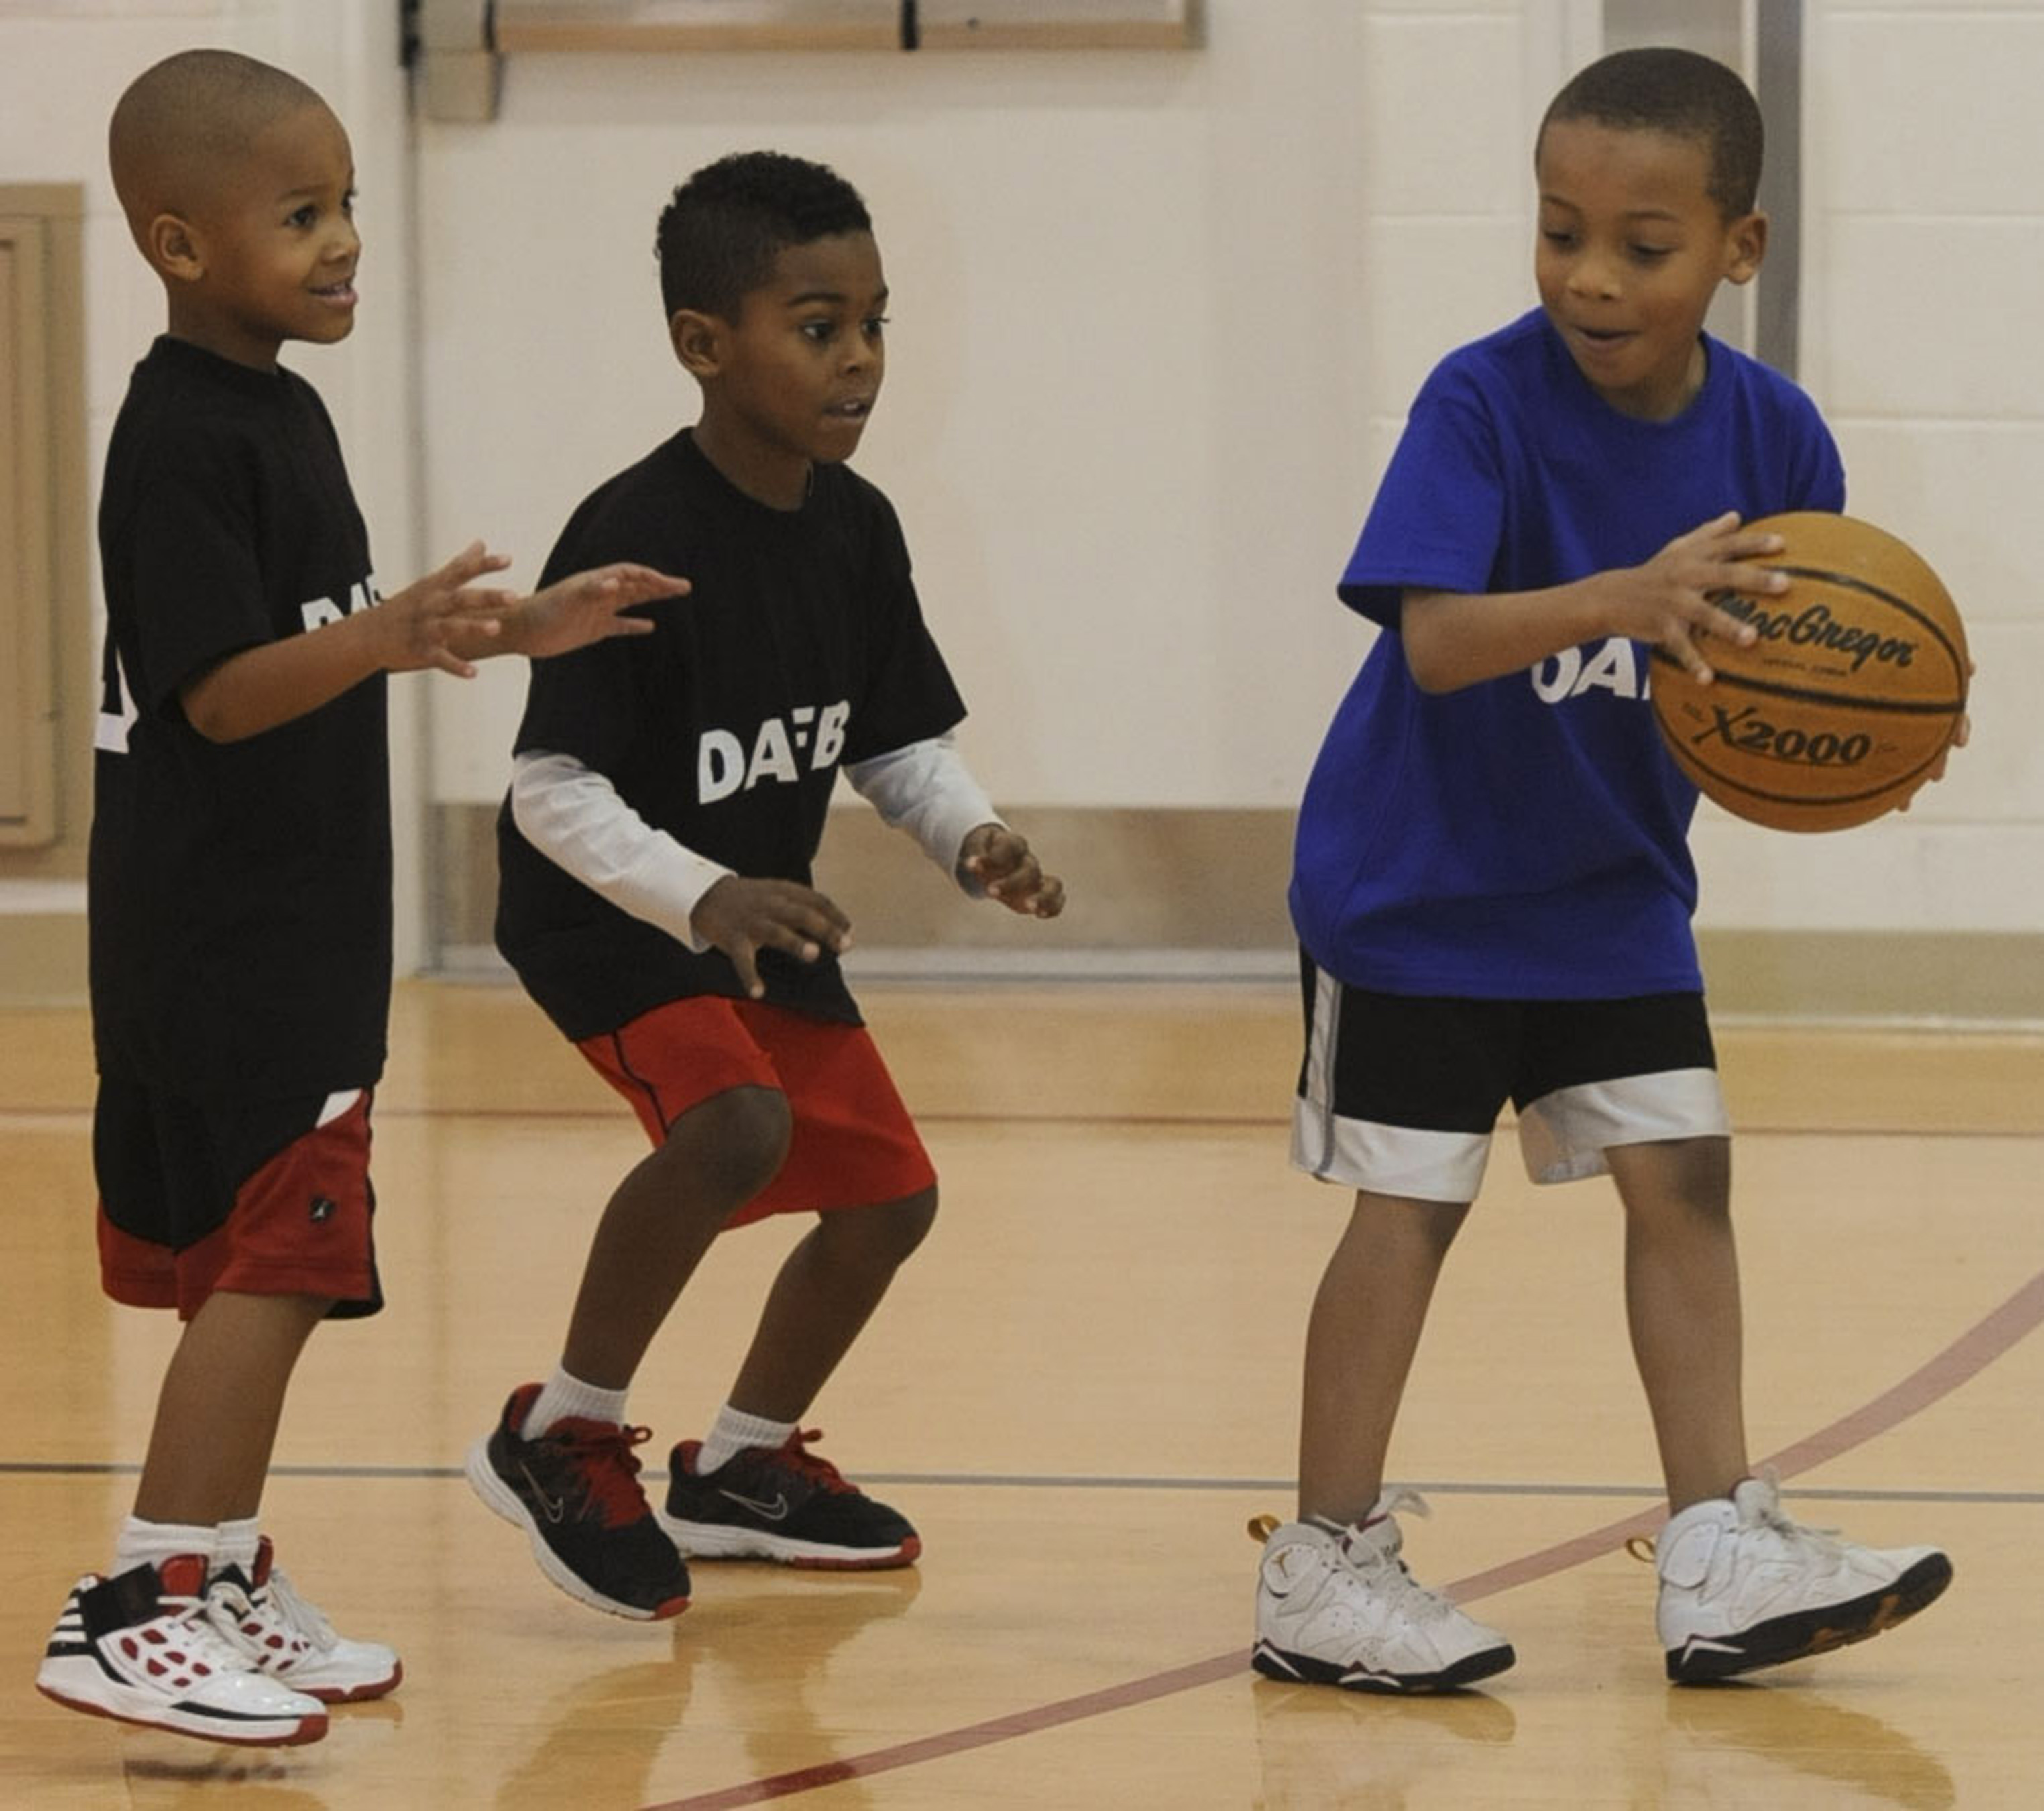 Children S Youth Sports: Youth Center Sports Program Scores > Dover Air Force Base